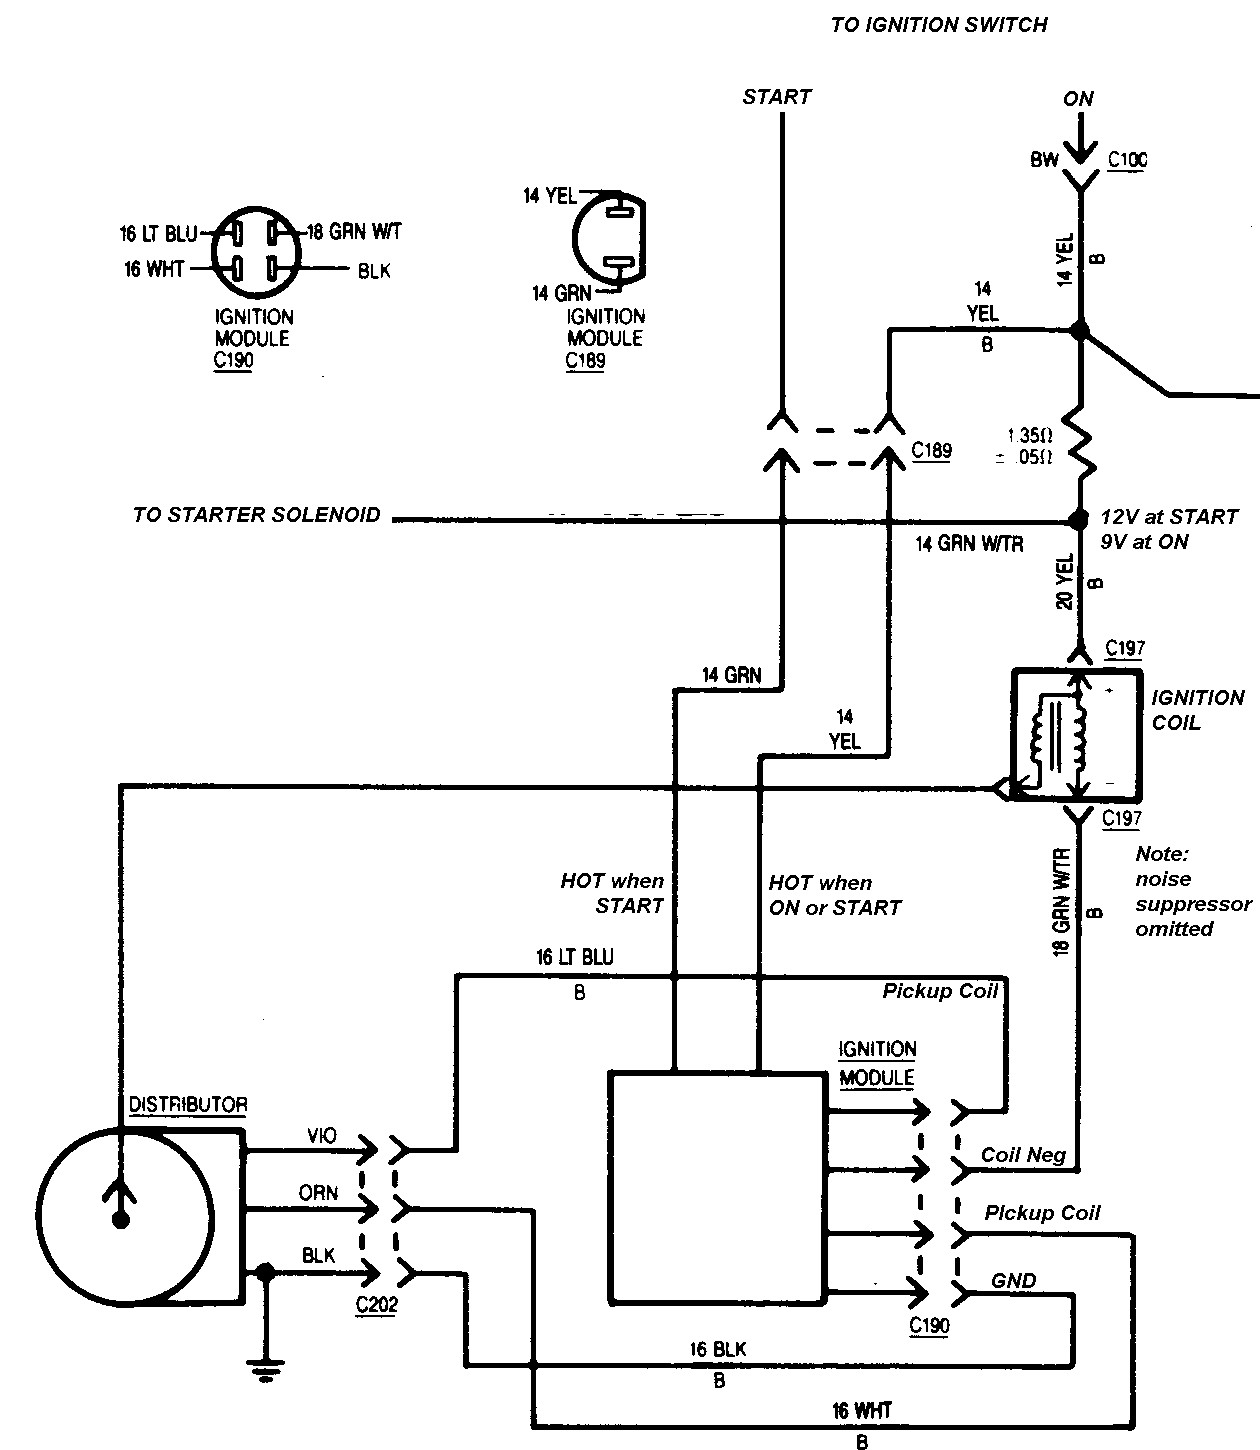 1989 chevy 350 engine diagram